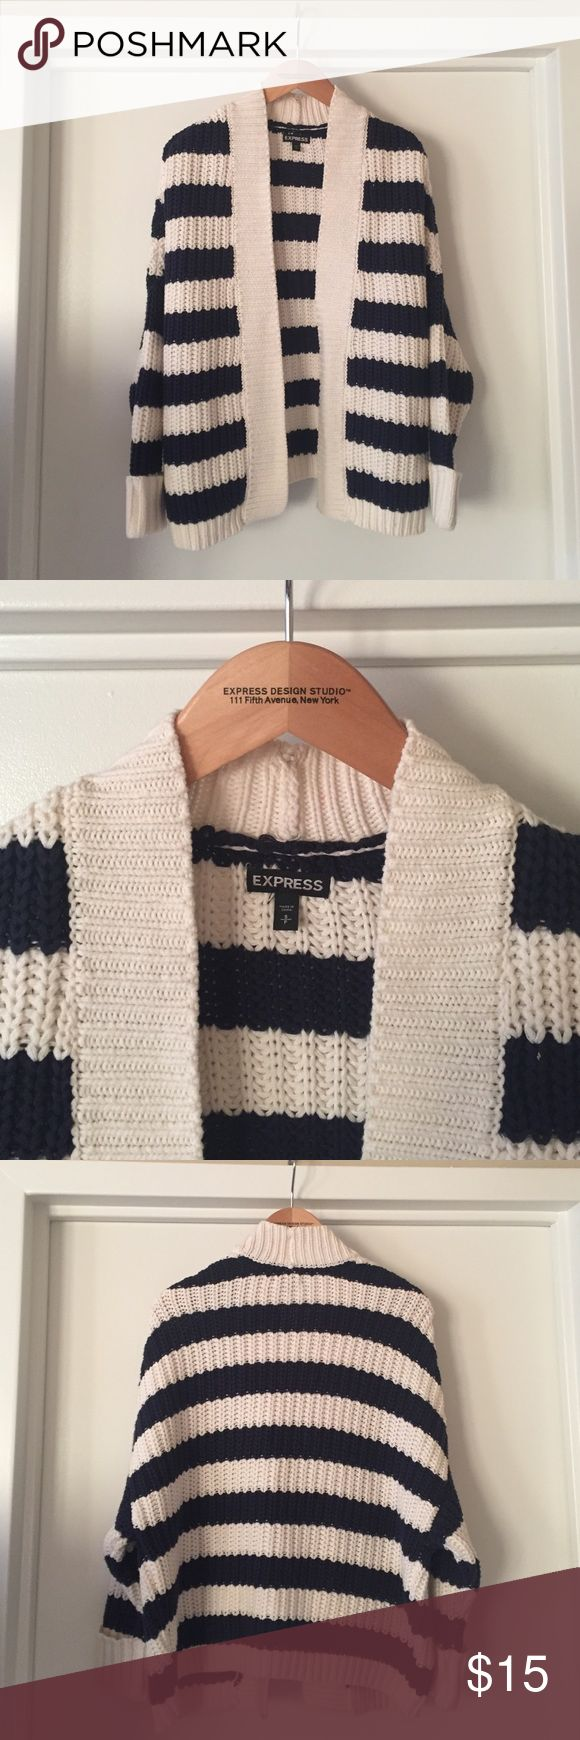 Express Striped Cardigan Express blue and cream striped open cardigan. Express Sweaters Cardigans